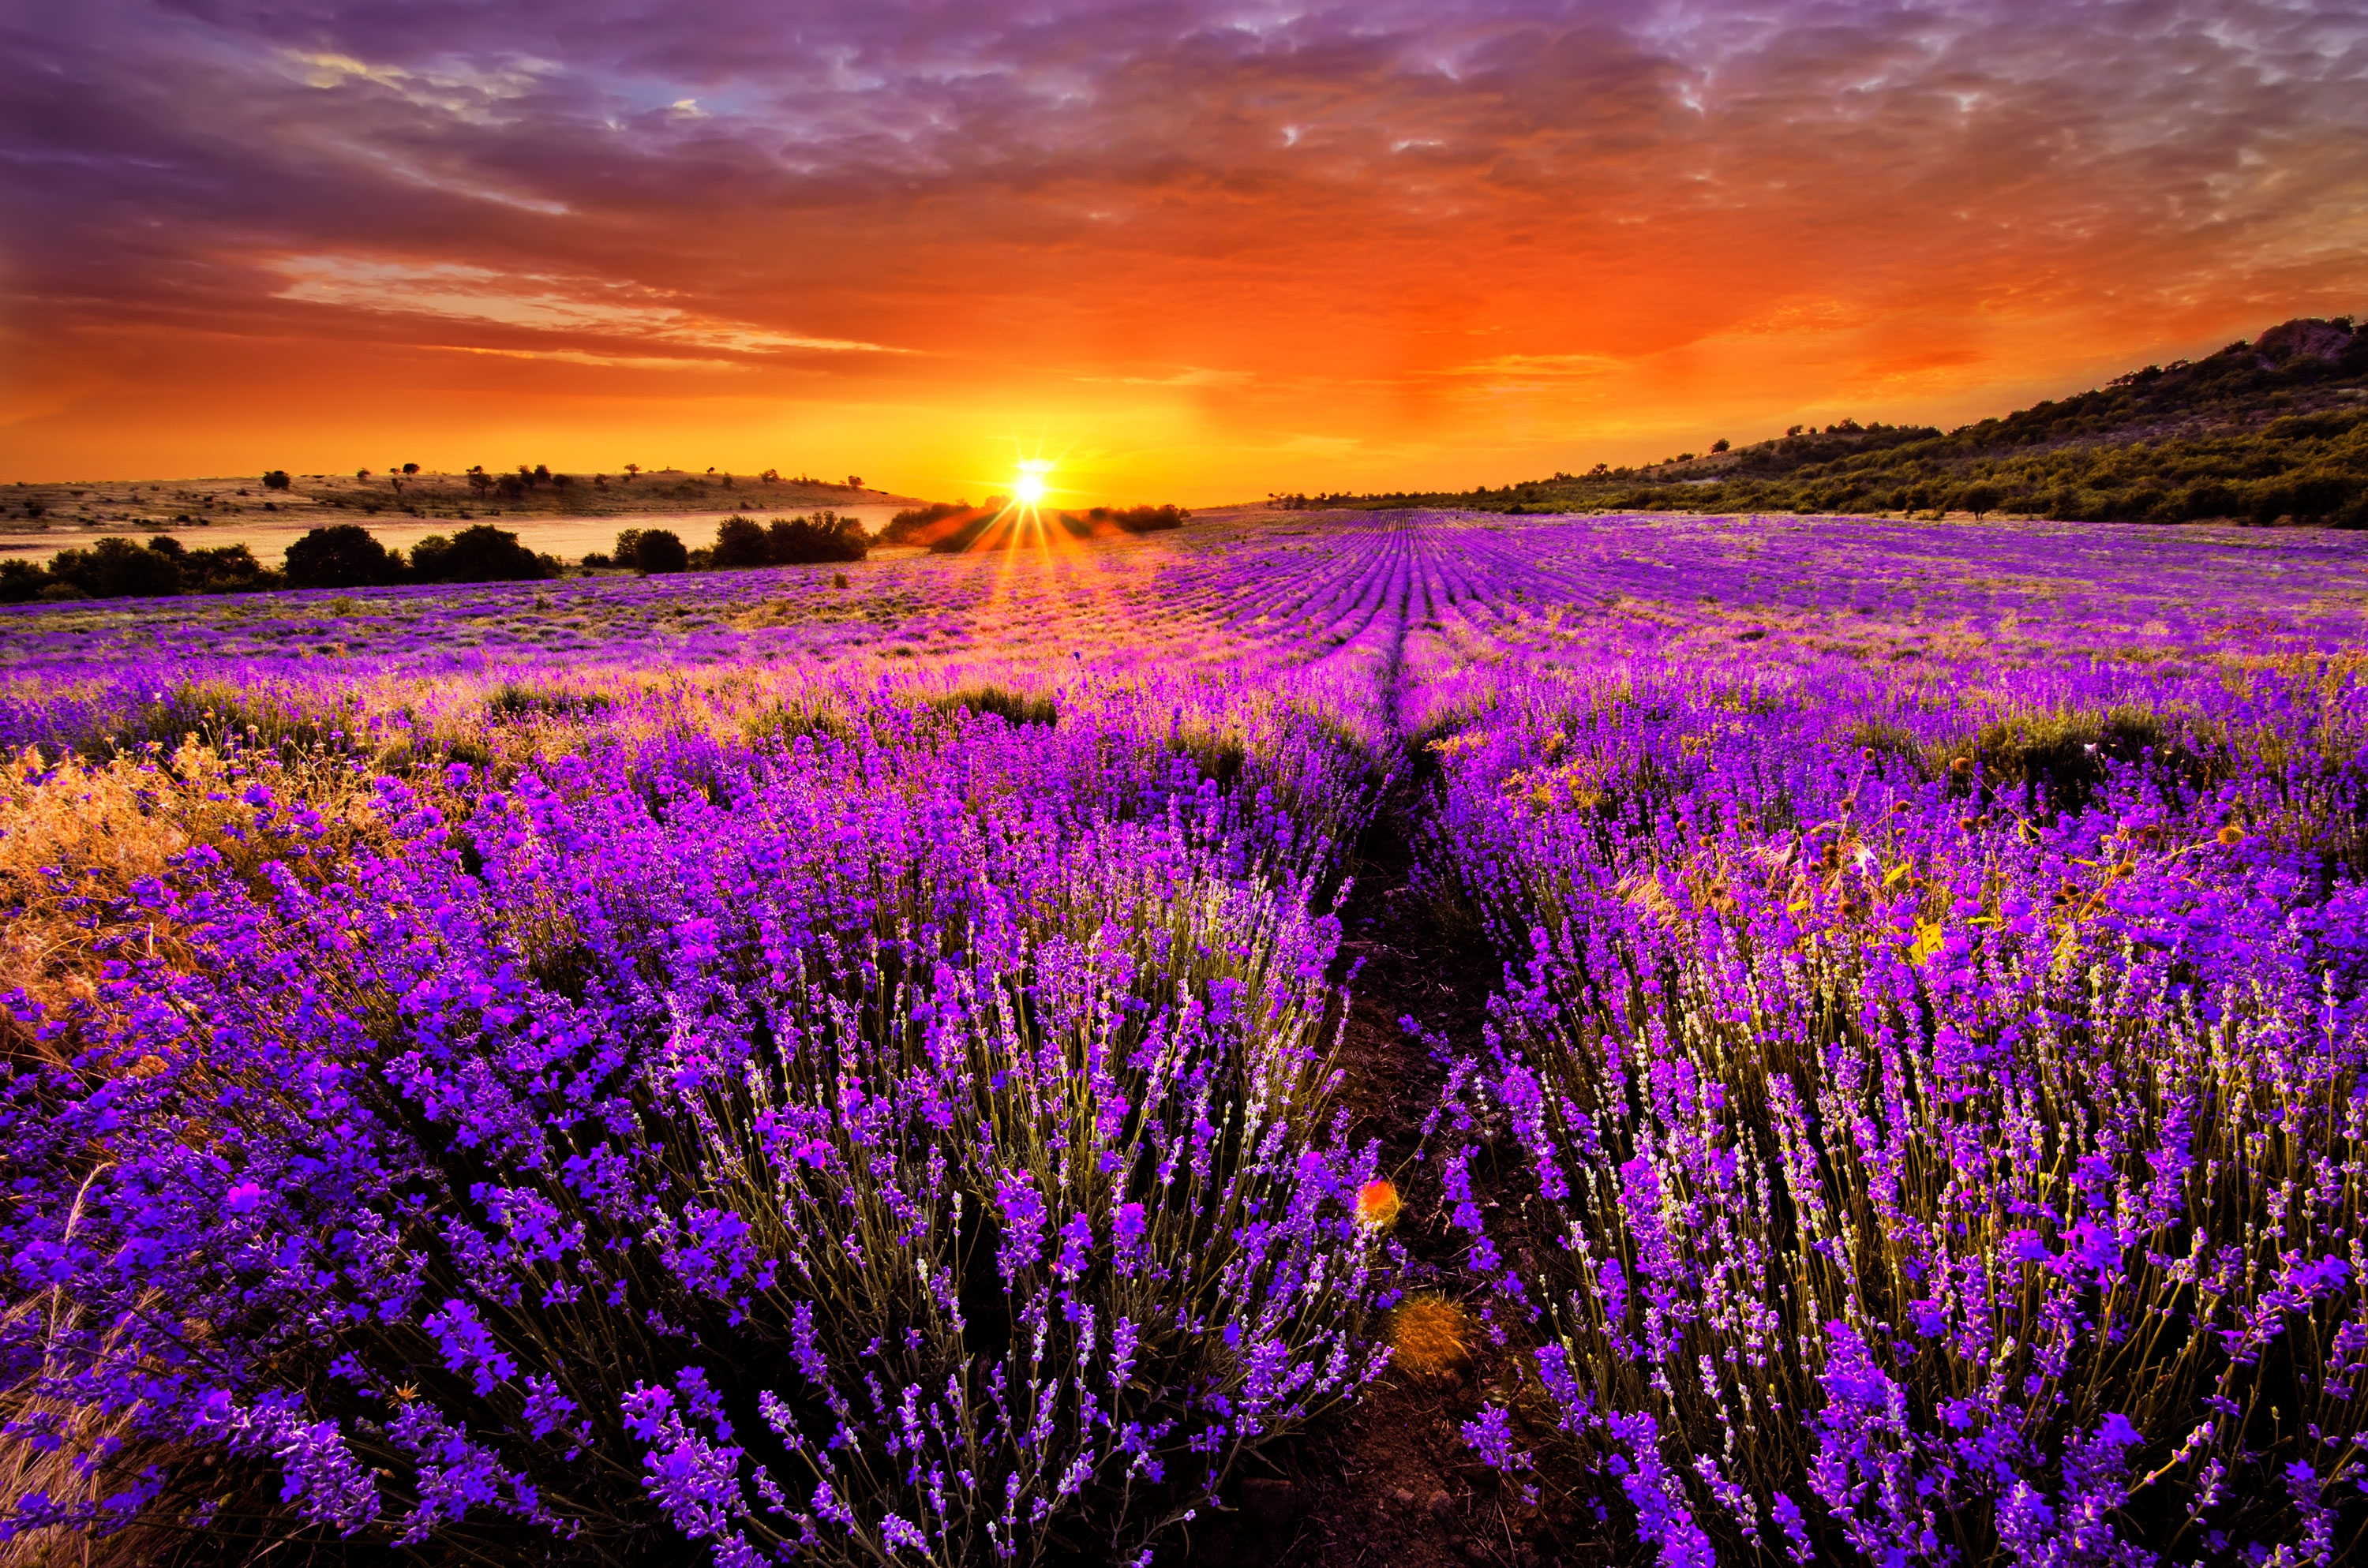 Lavender Field at Sunset HD Wallpaper | Background Image ...